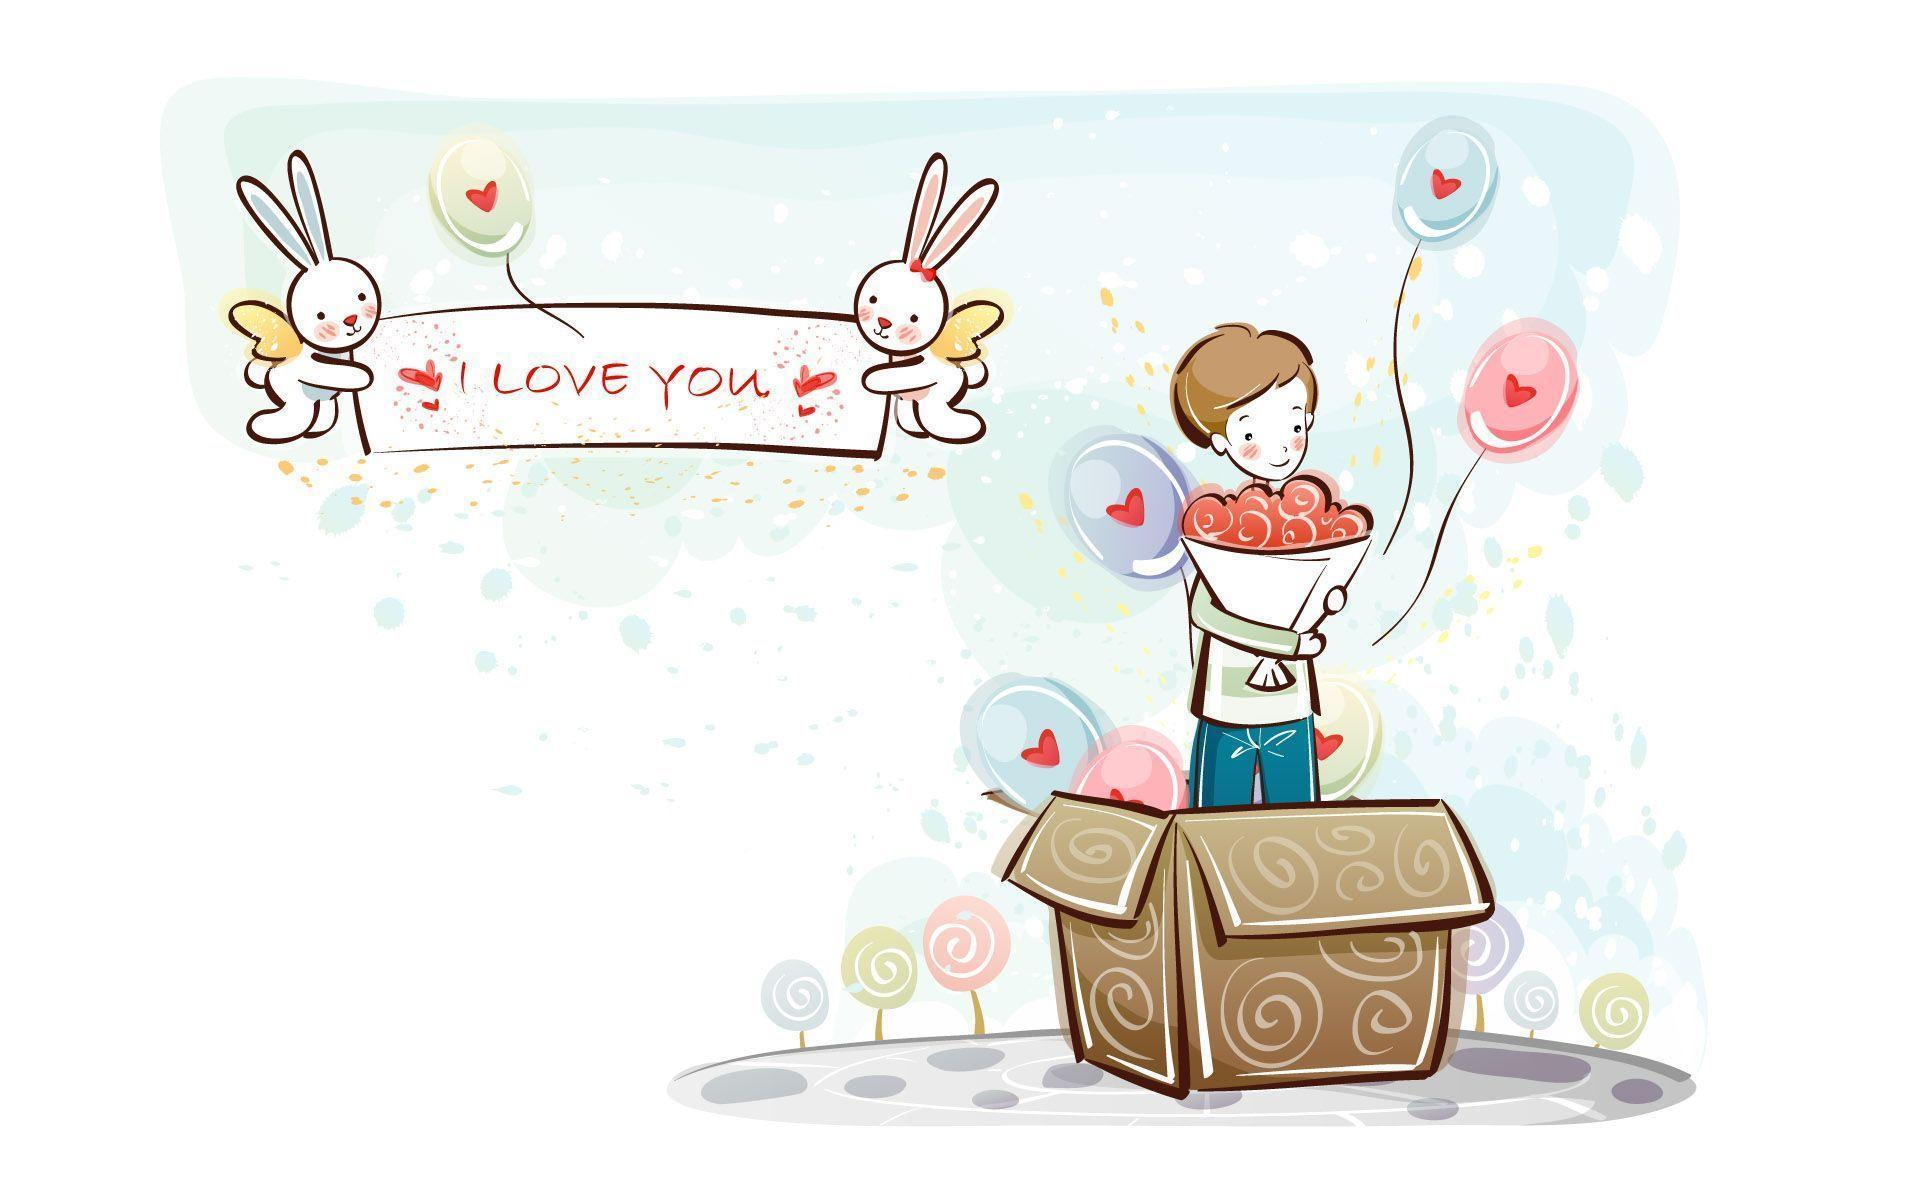 Hd Wallpaper Of cartoon Love couple : Image Gallery love couple cartoon wallpaper